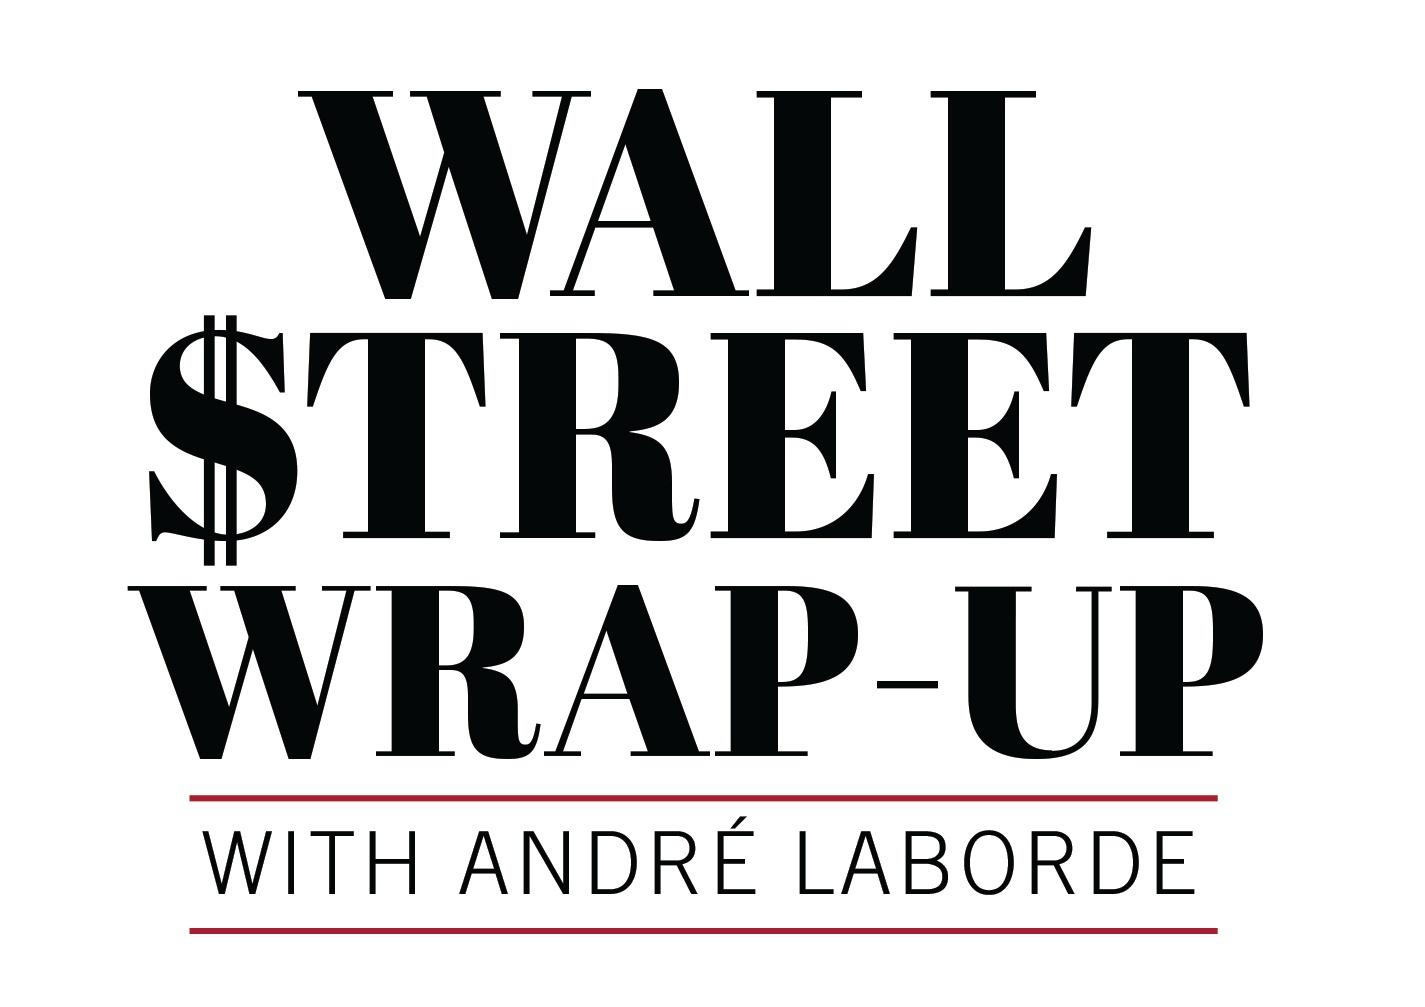 Wall Street Wrap-Up with Andre Laborde